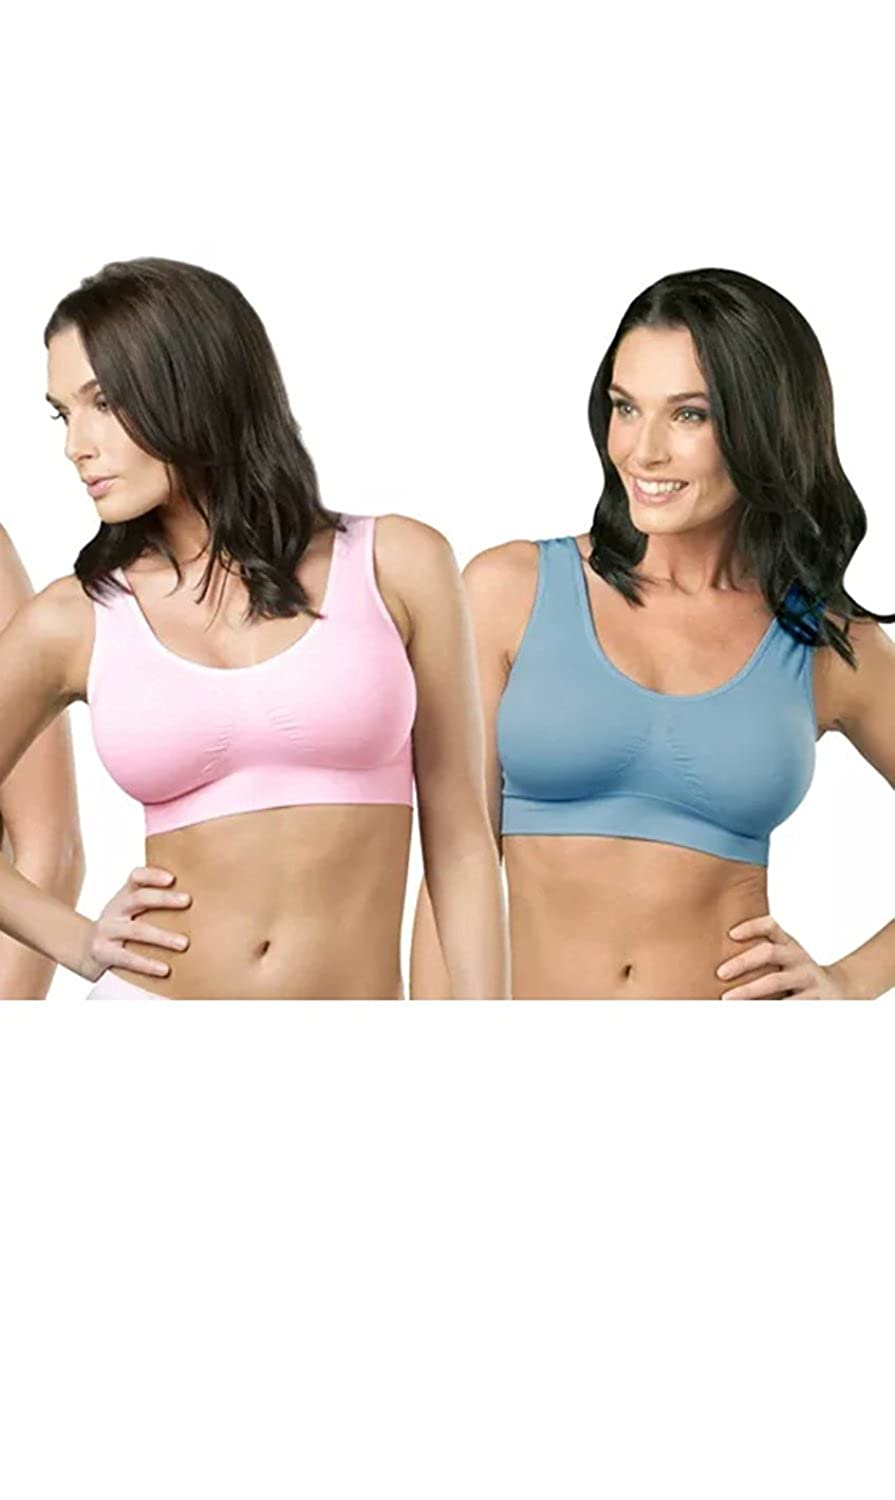 960ad21f566 Genie Bra Womens Seamless Wireless Bra, As Seen on TV - 2 Pack (Barely Pink  & Powder Blue)- Medium at Amazon Women's Clothing store: